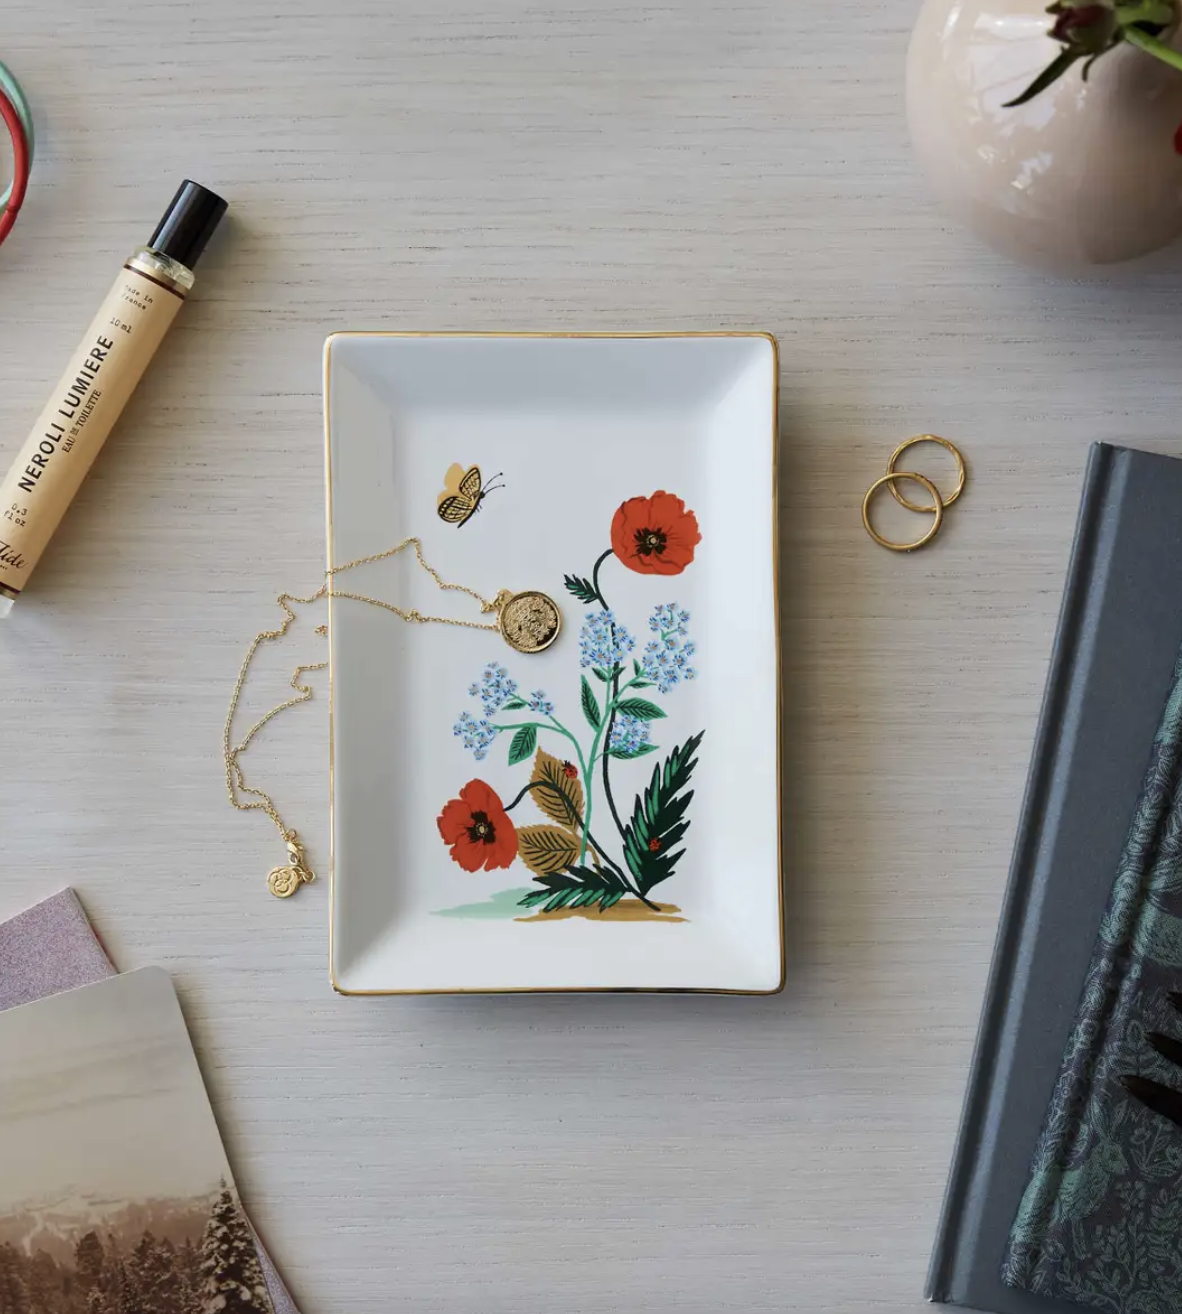 the tray, which has a floral design with a butterfly, holding a necklace